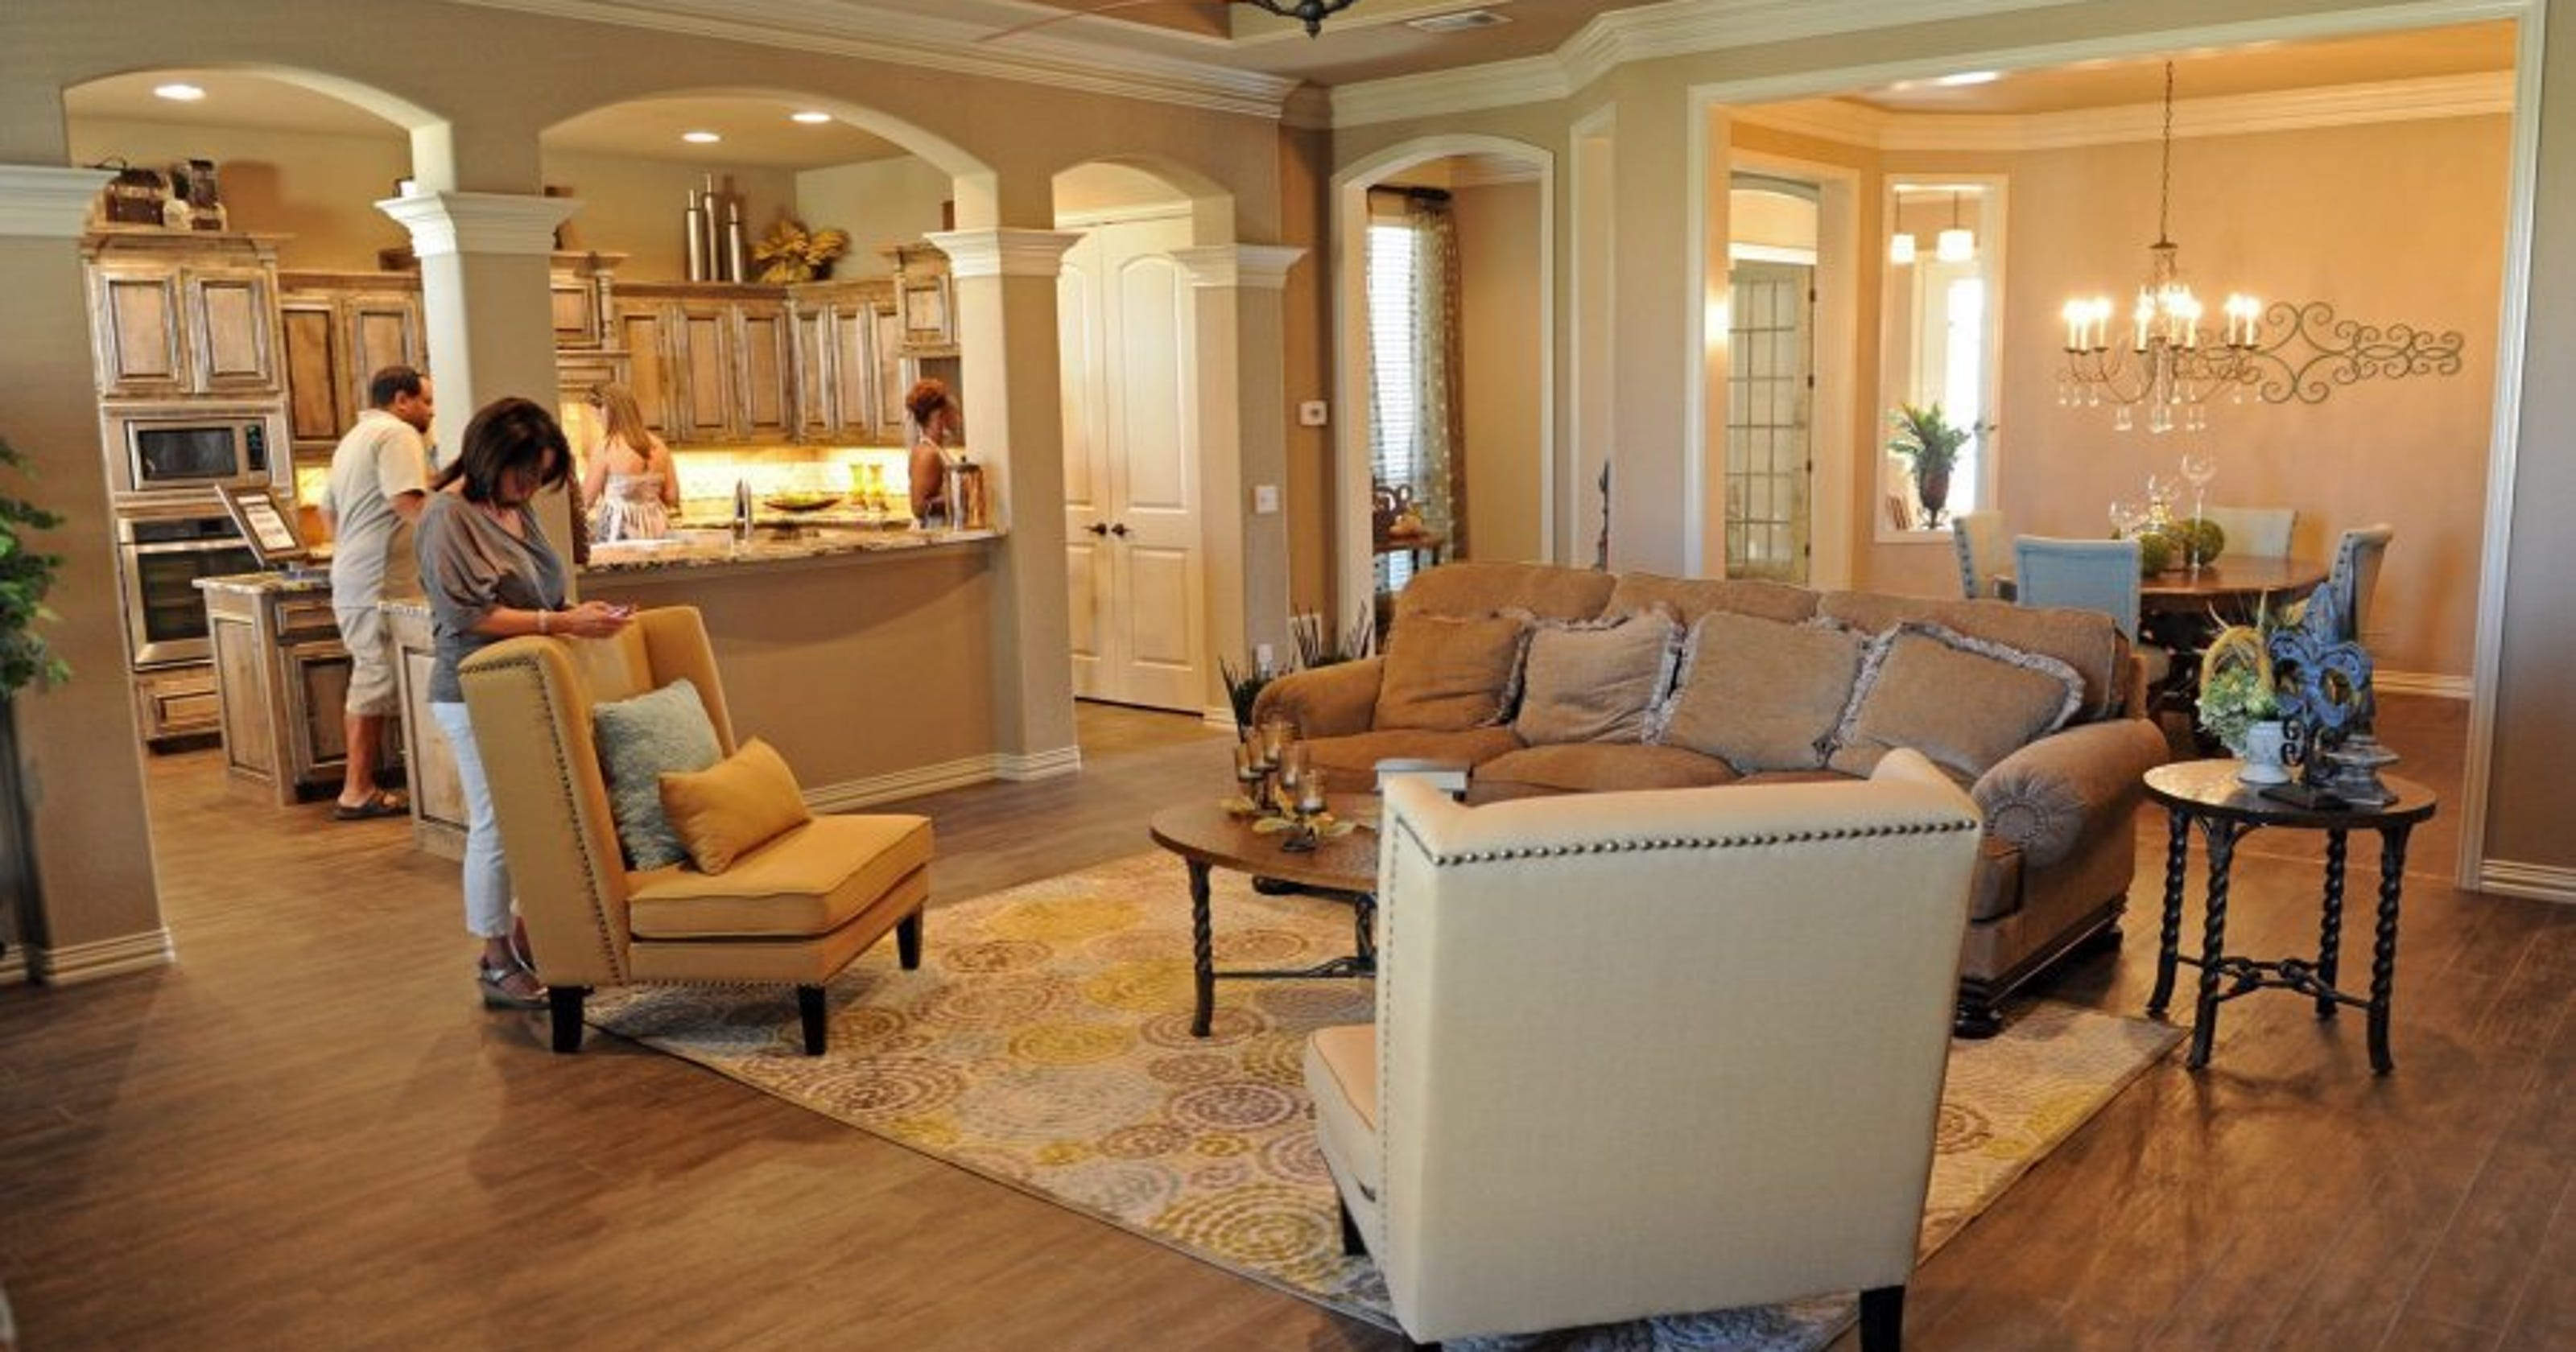 PARADE OF HOMES: New homes tout high-tech appliances, crown molding ...